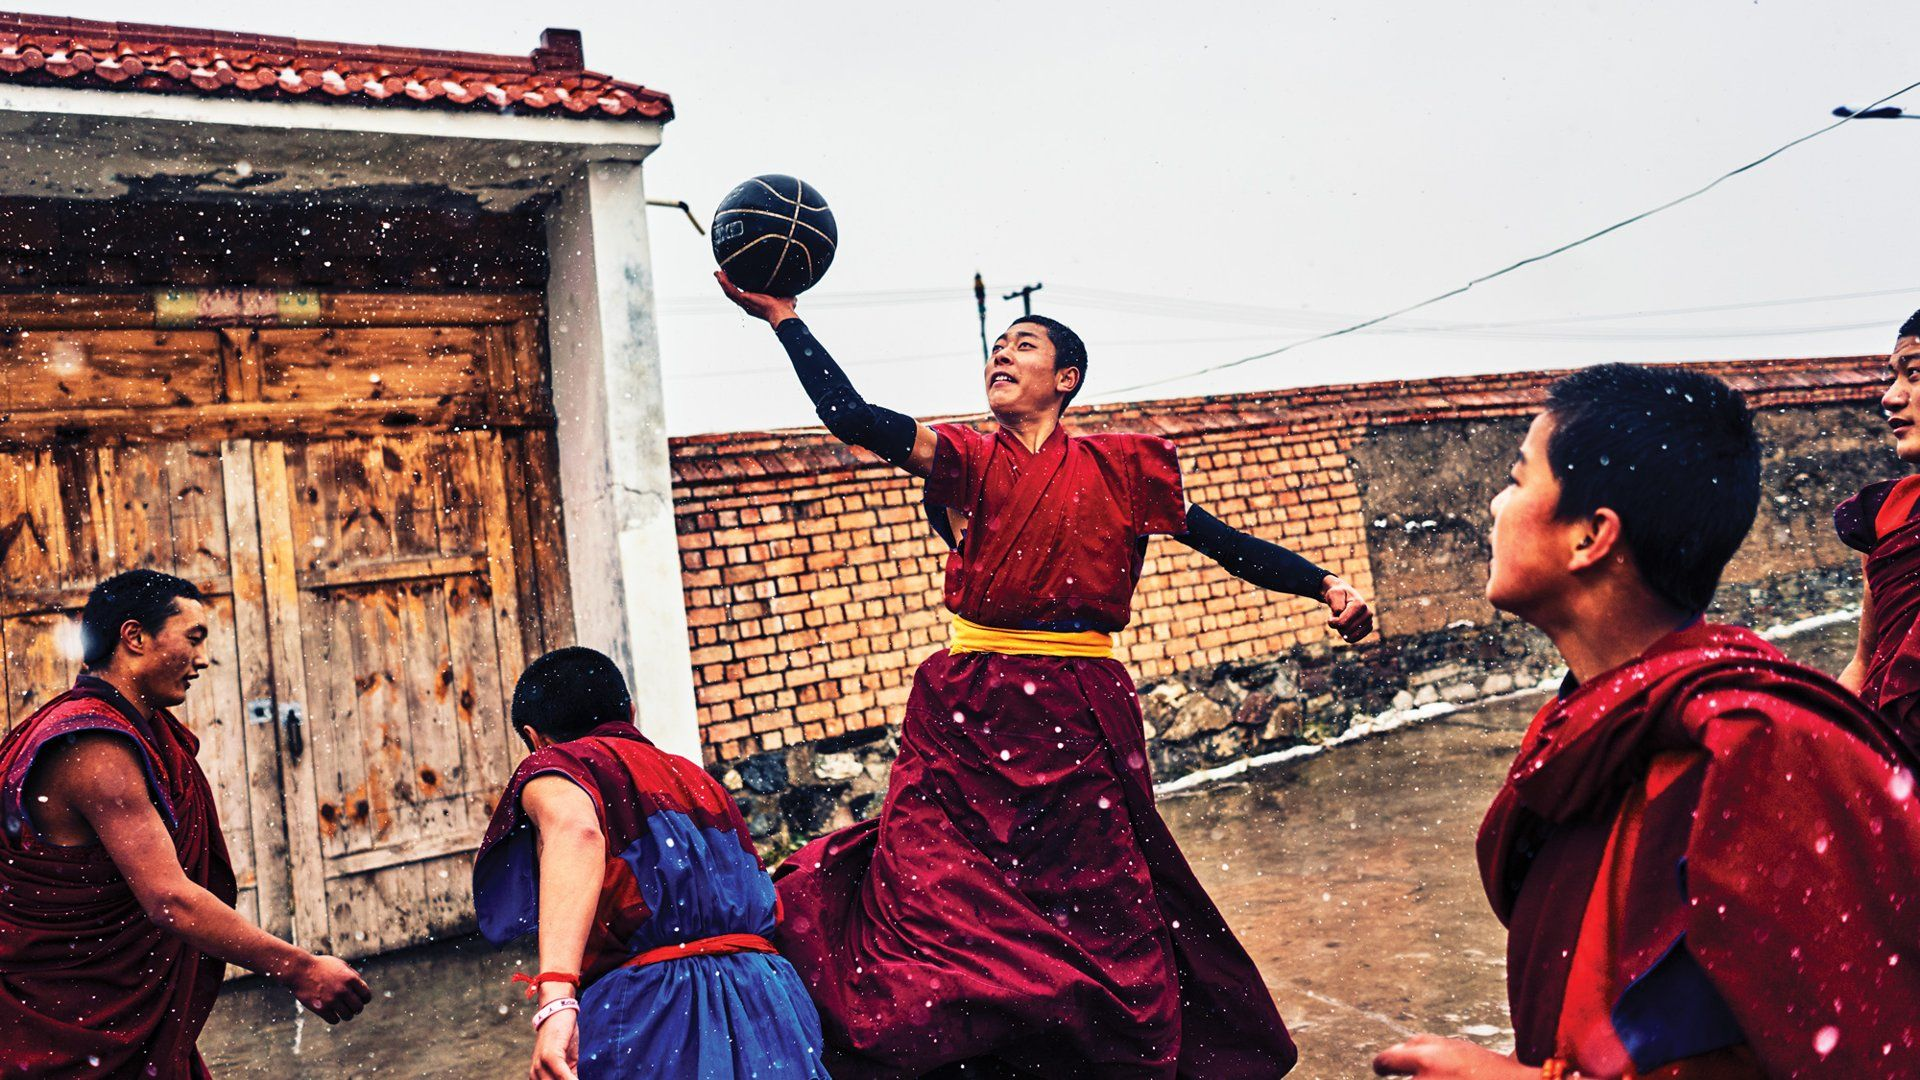 Monks, nomads, and a sport's unlikely ascent in a remote corner of the globe. Image by An Rong Xu. Tibet, 2018.